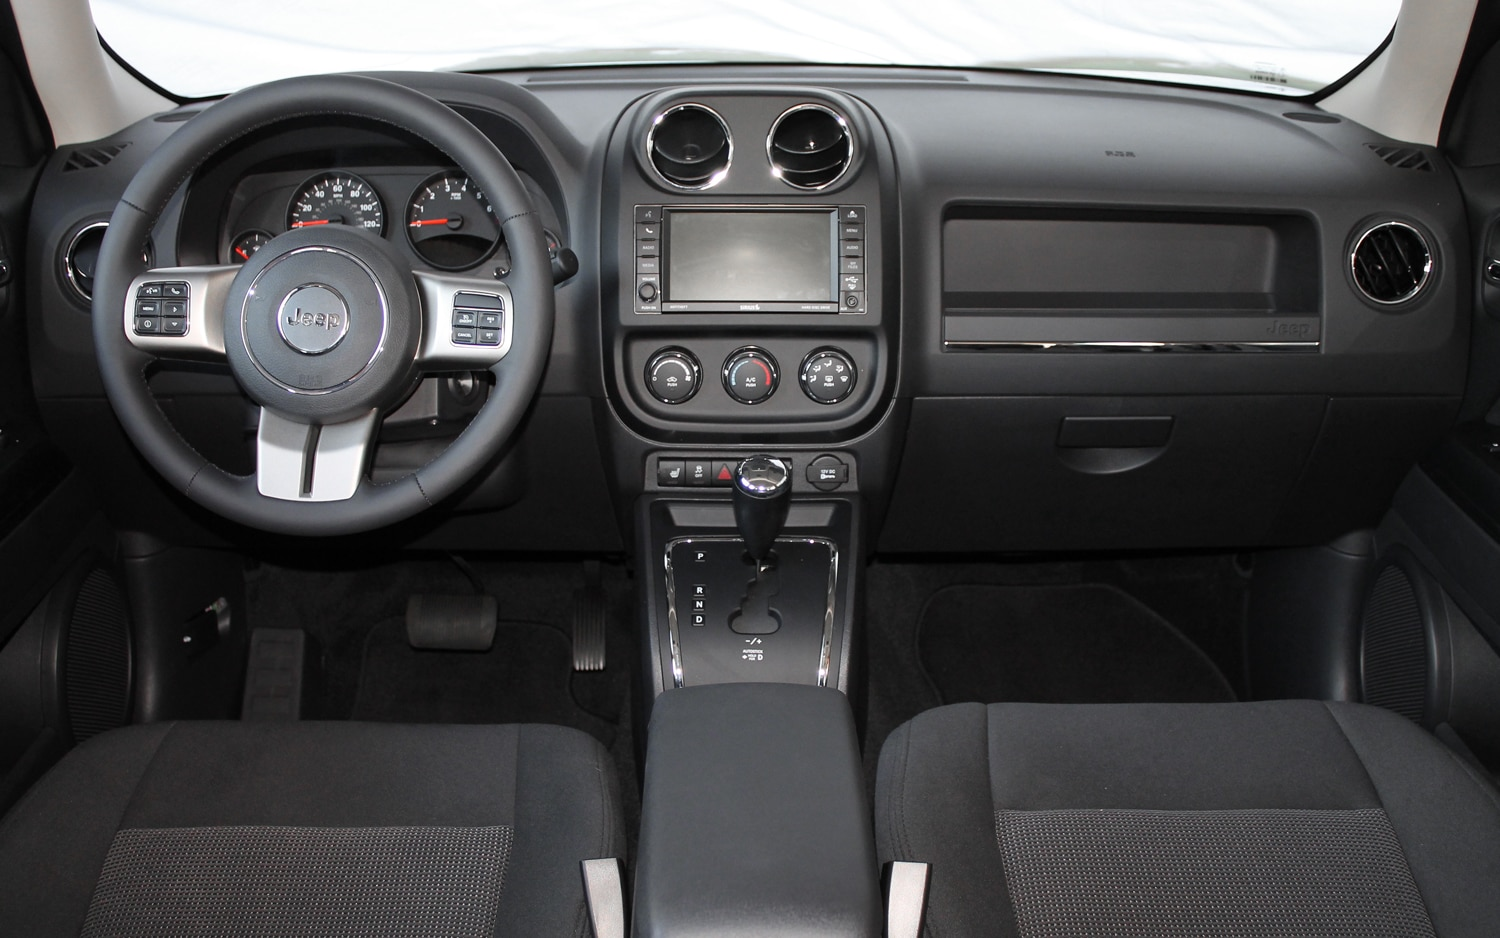 2013 Jeep Patriot Latitude 4X4 Rear Dash View 02